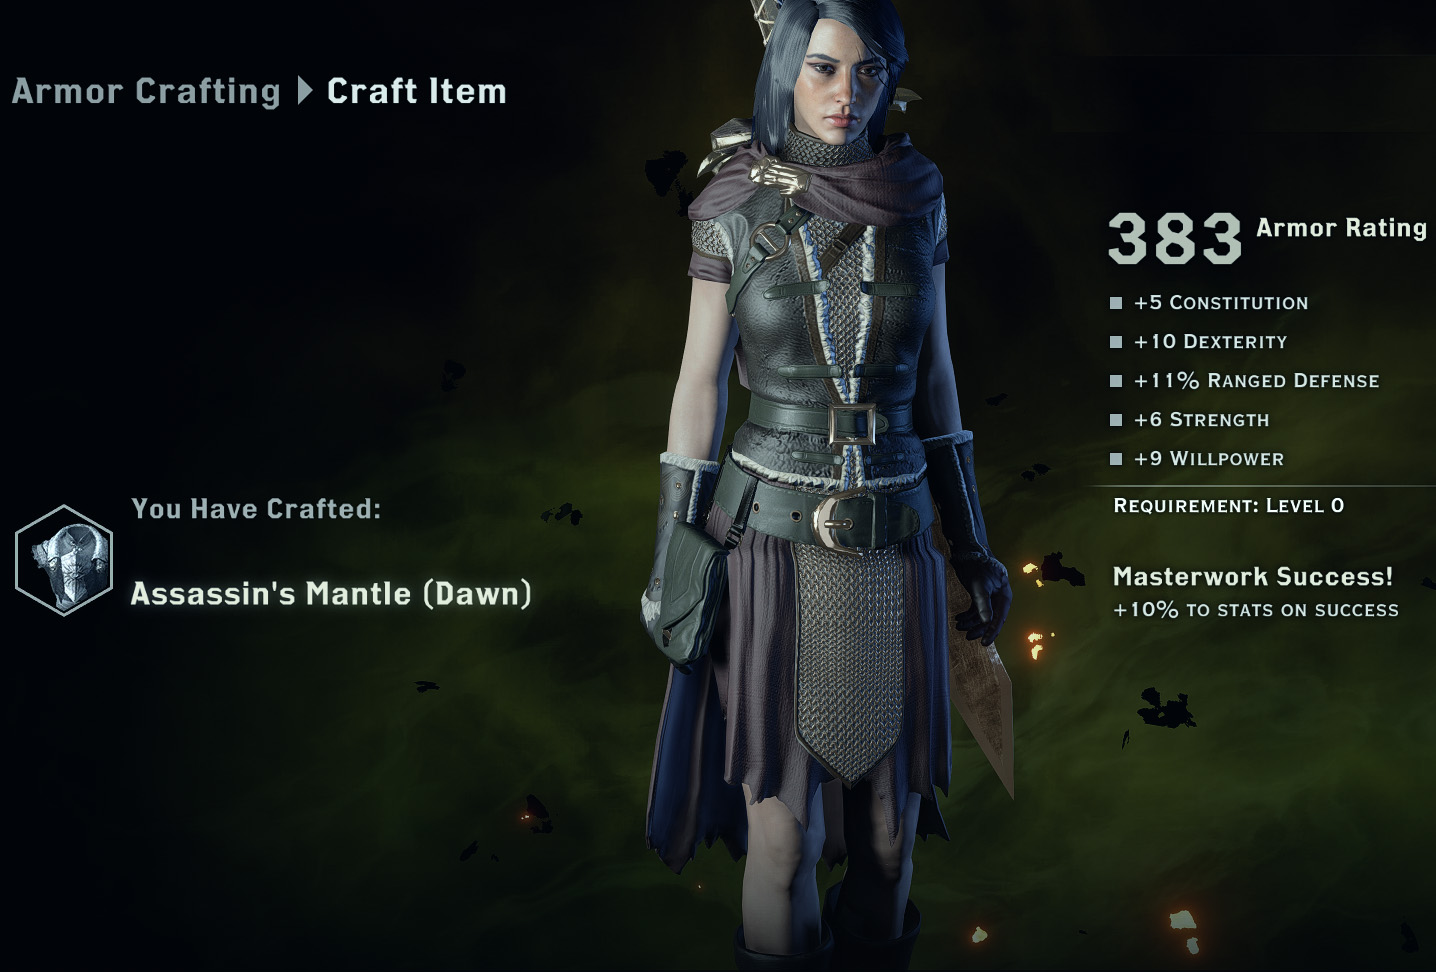 Advanced Crafting Dragon Age Inquisition